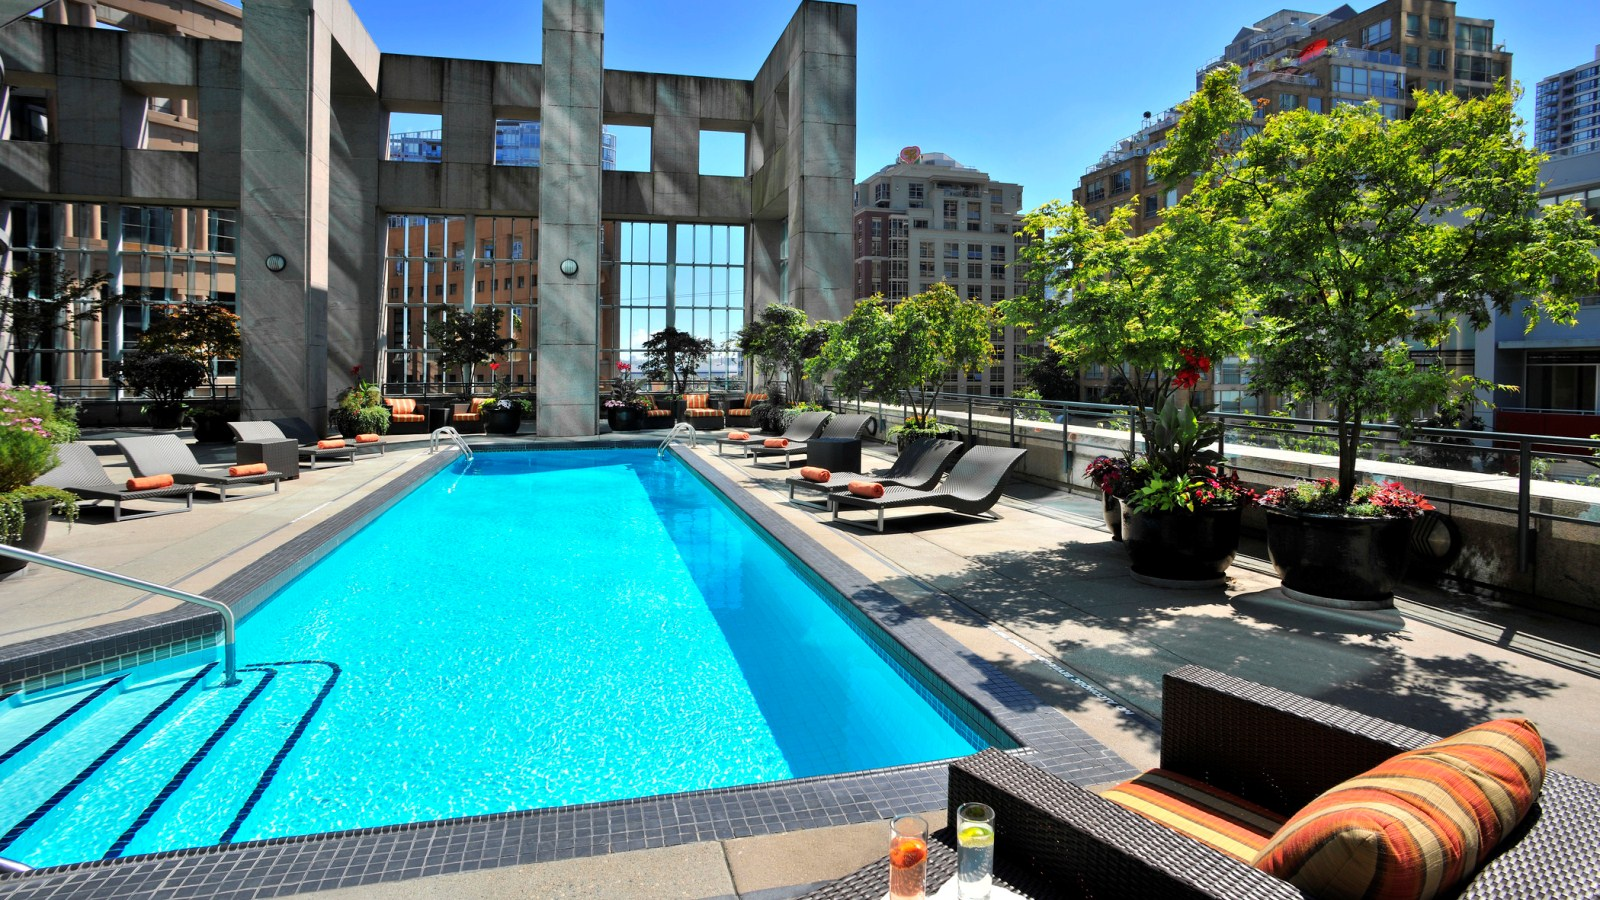 Westin Grand Vancouver Outdoor Pool Going To The Chapel